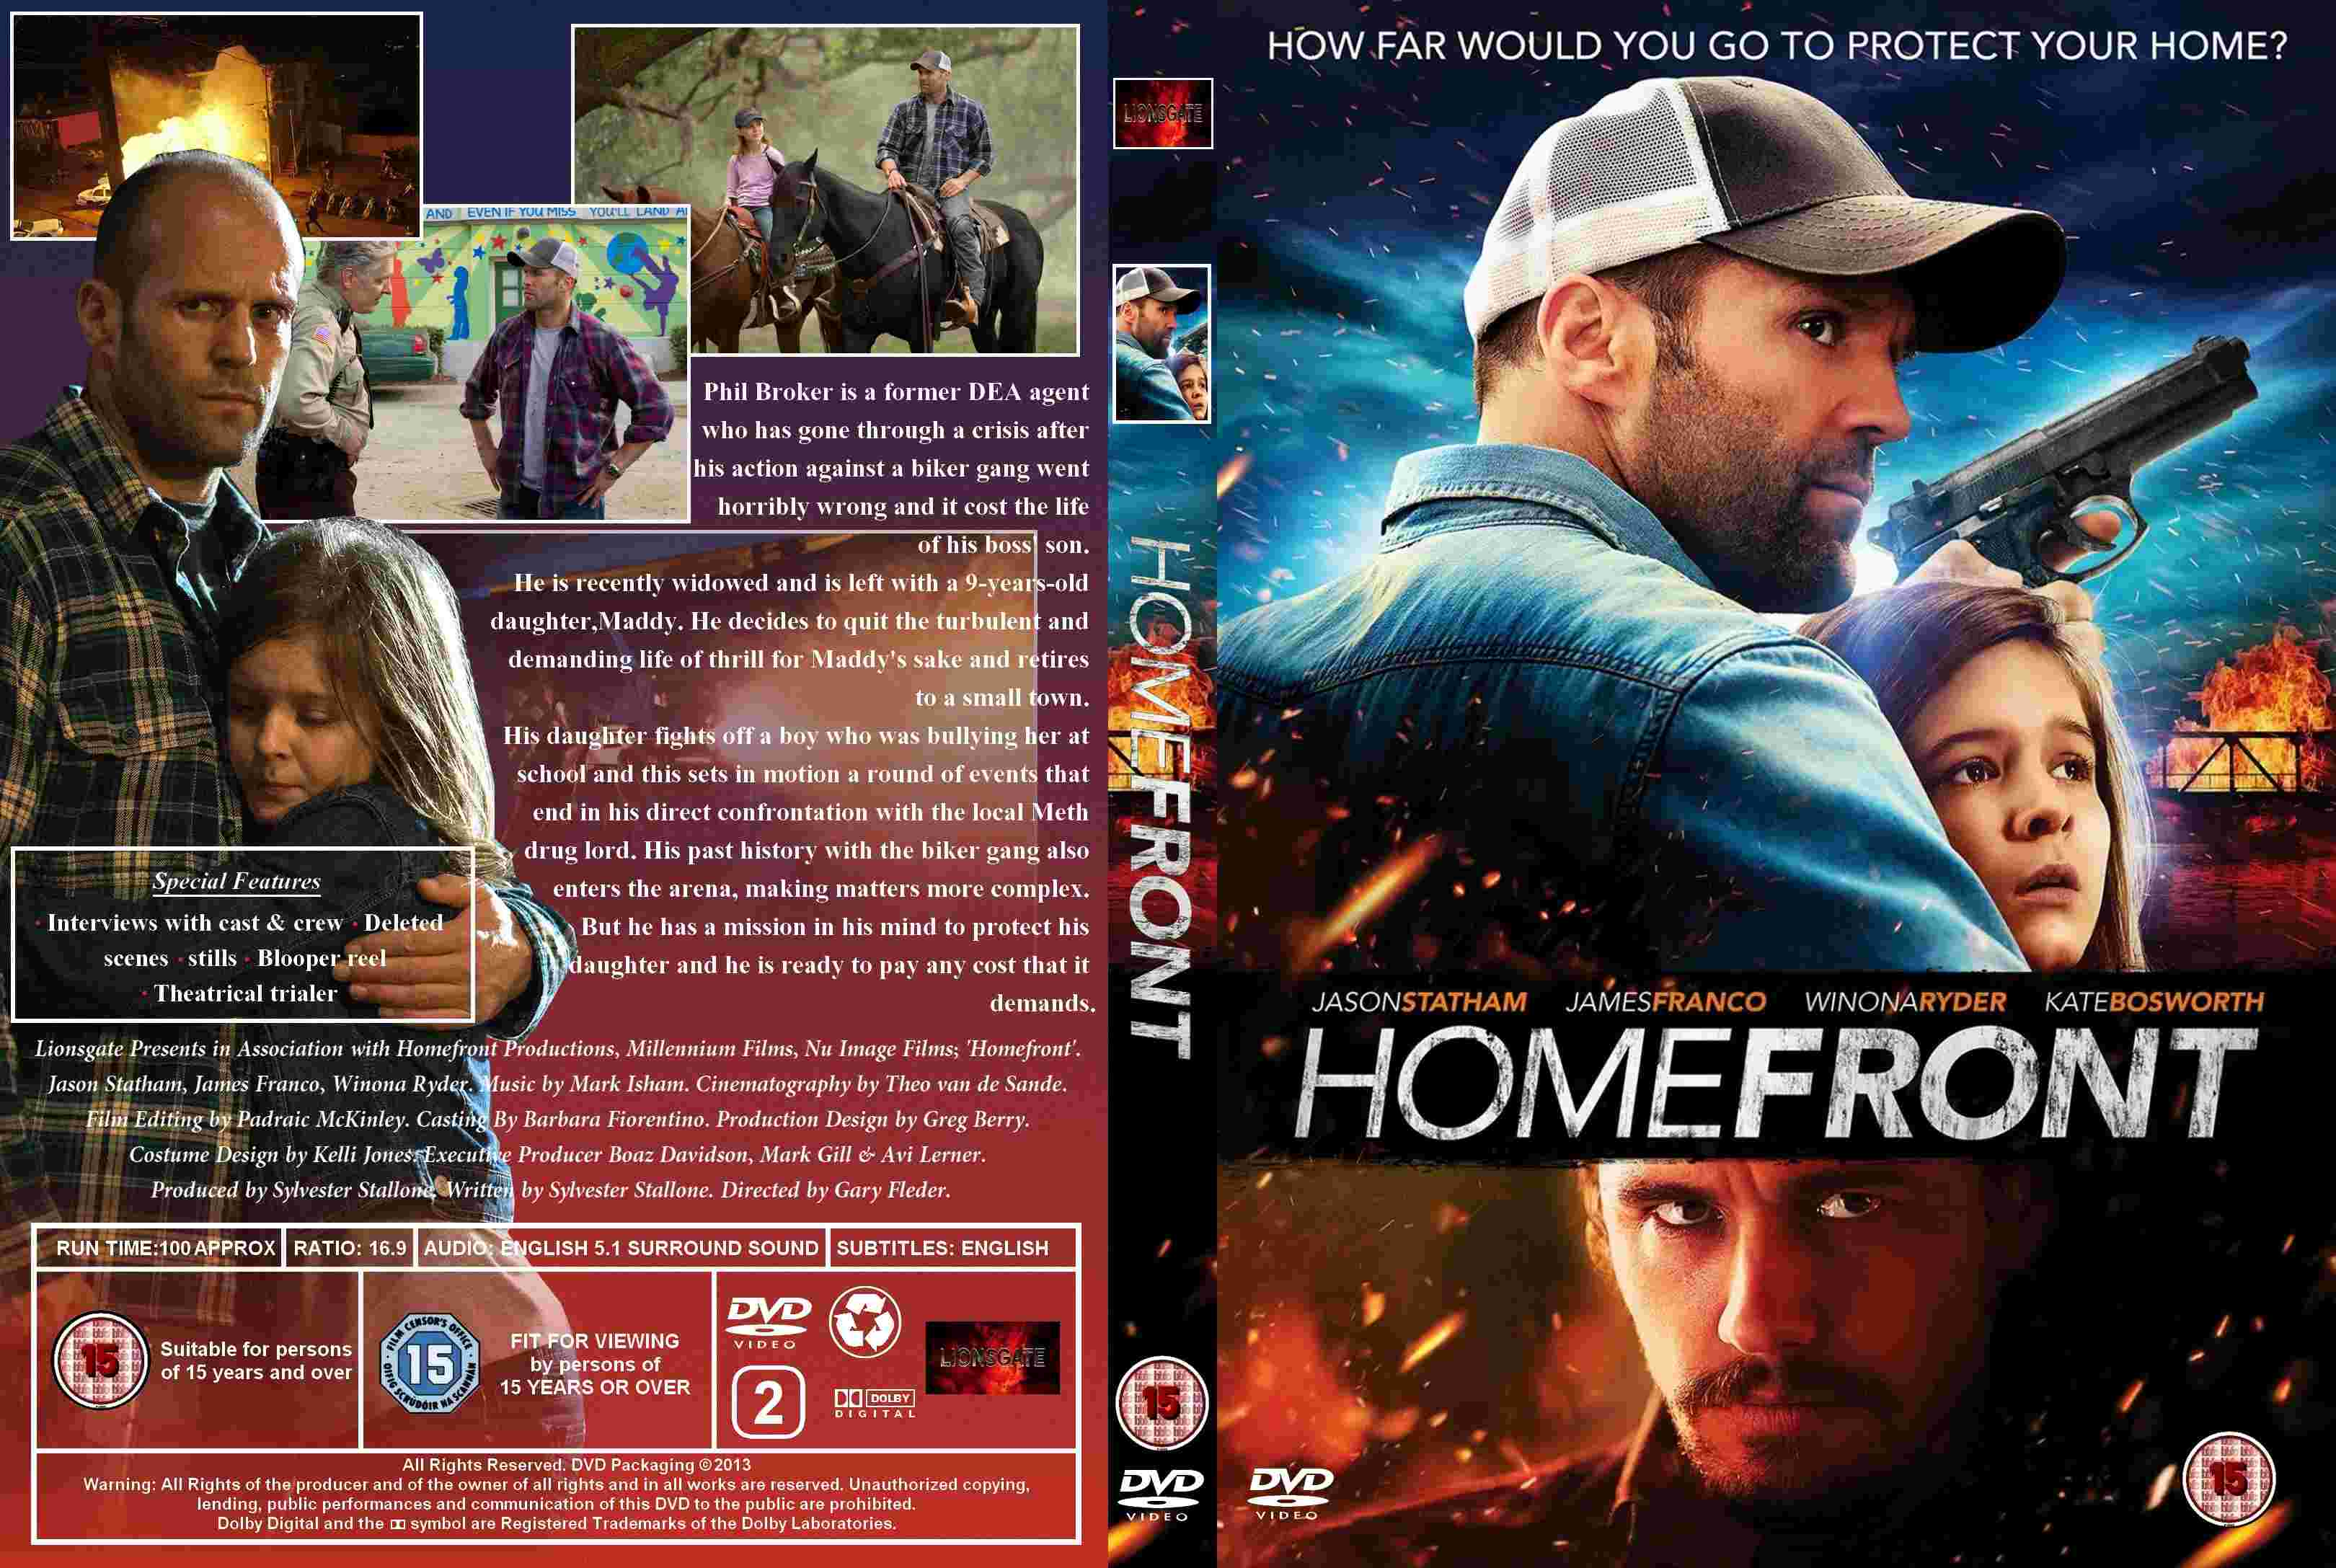 Homefront 2013 Max Back Cover